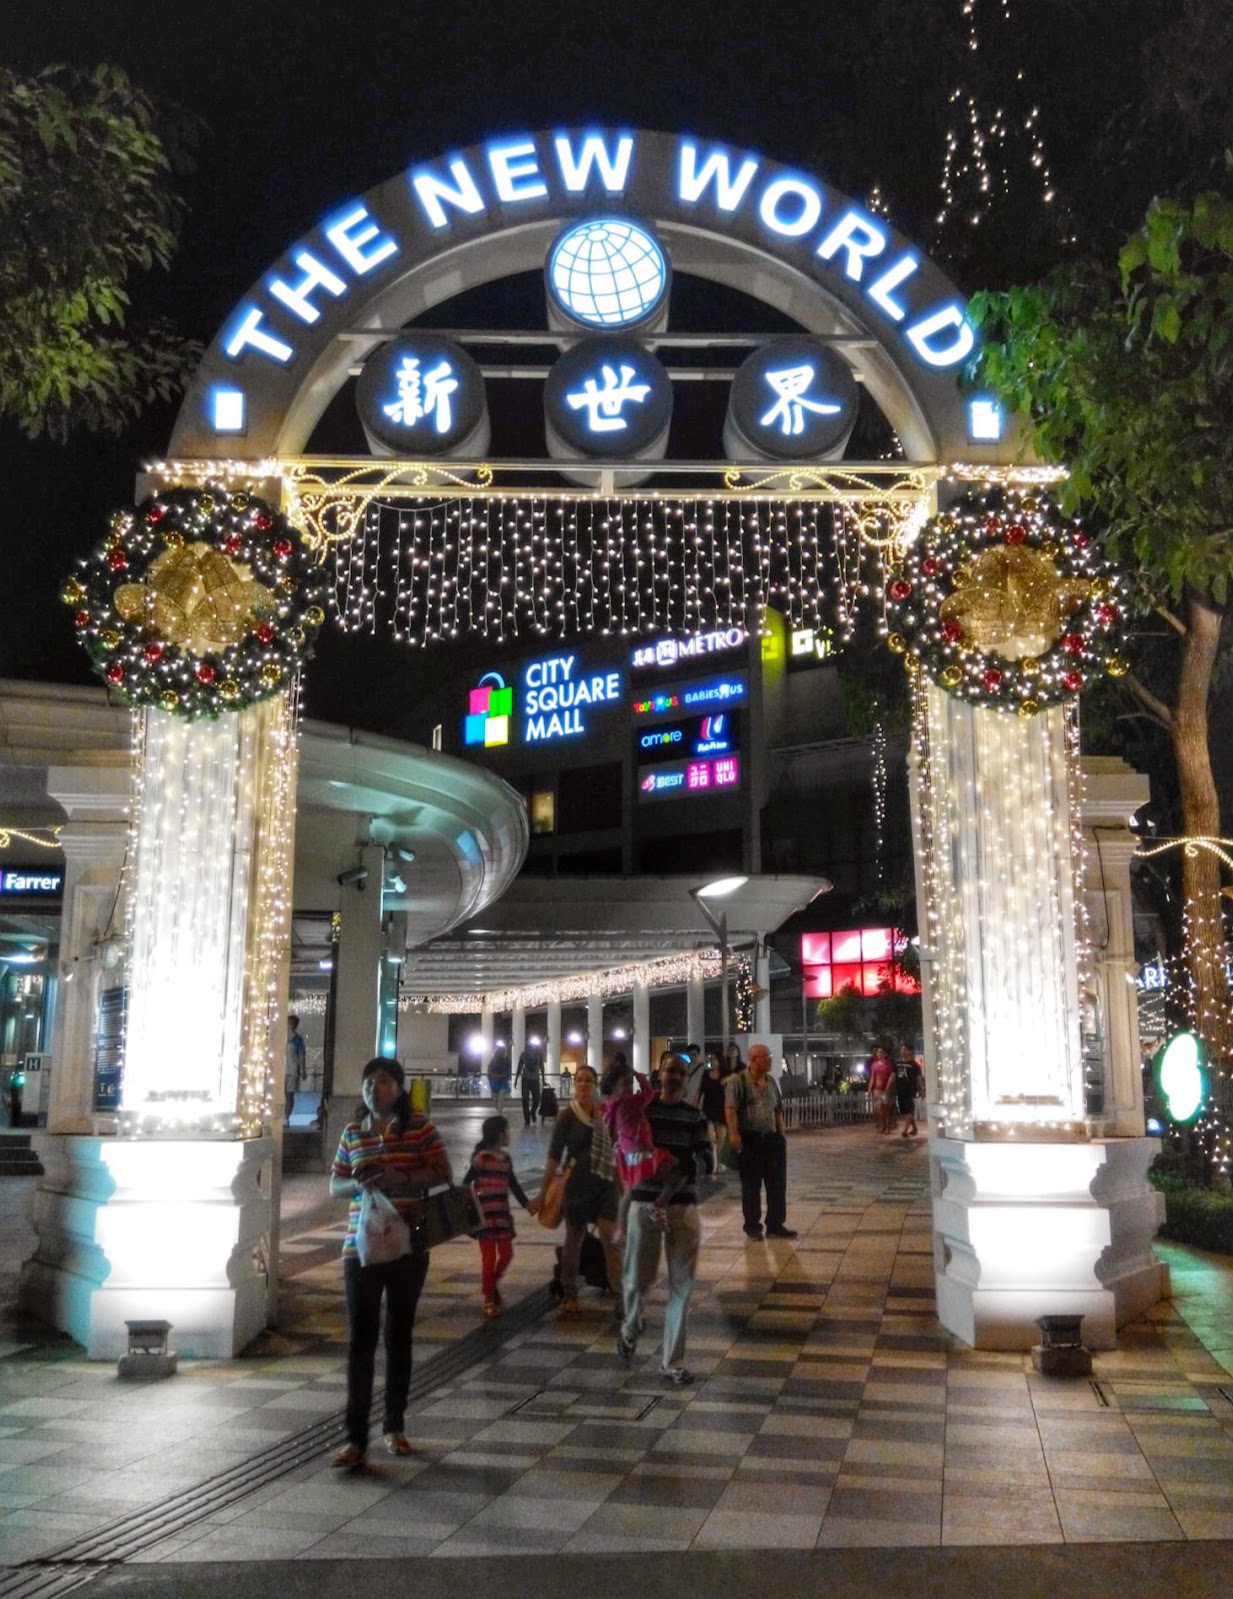 The gate of the New World Amusement Park, Singapore